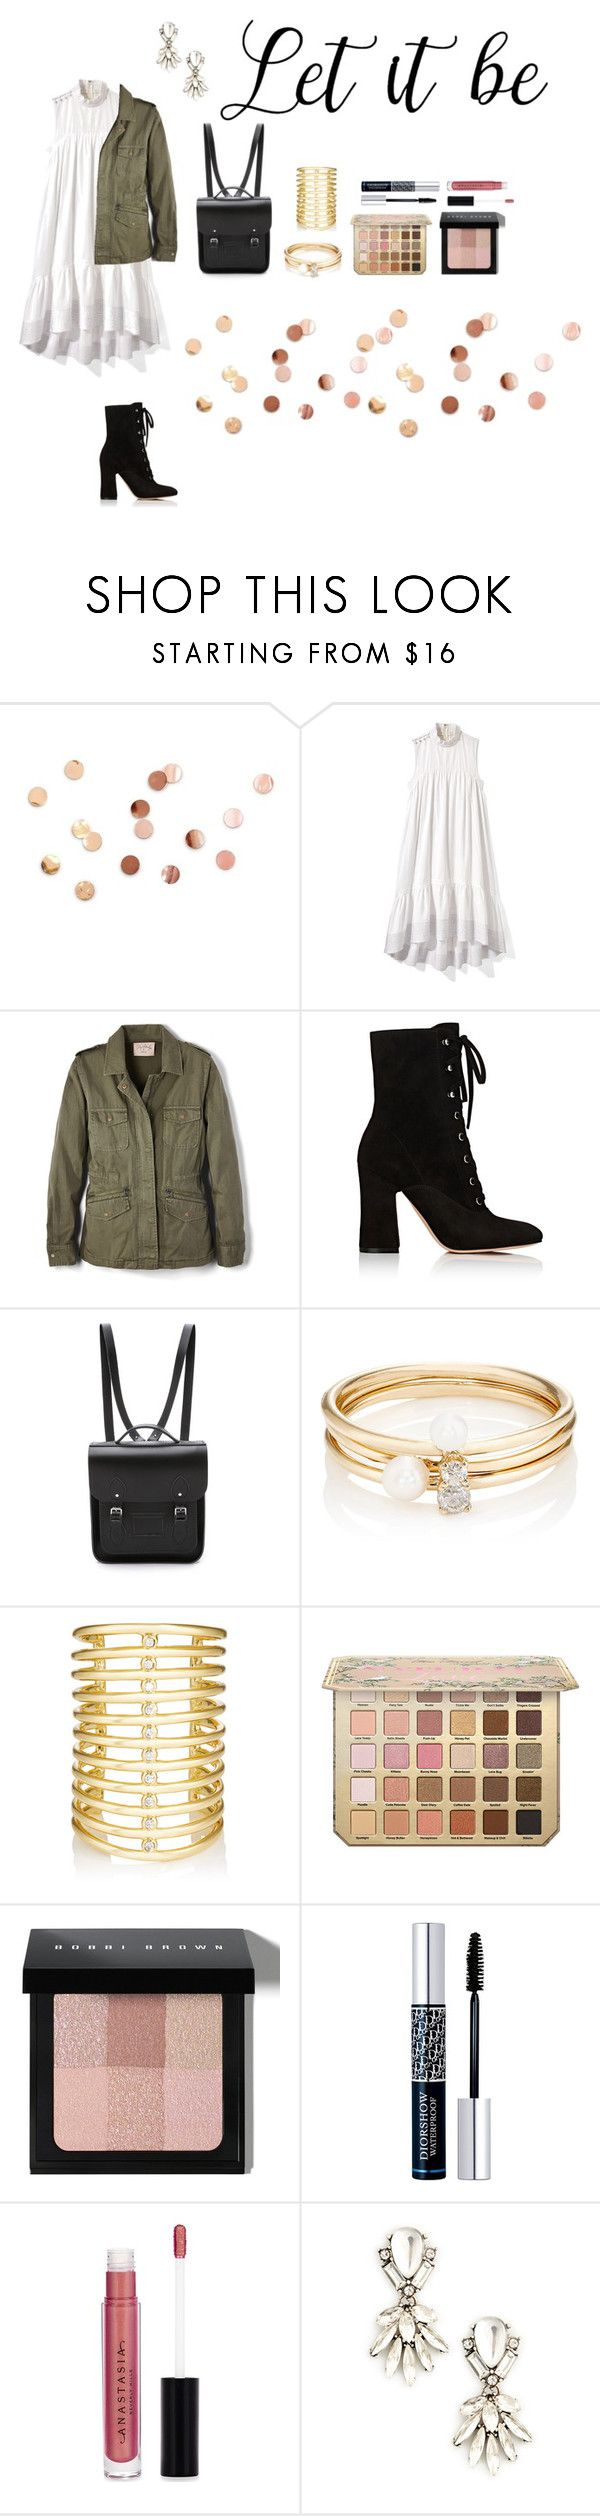 """""""Let it be"""" by hannahhocom ❤ liked on Polyvore featuring Umbra, 3.1 Phillip Lim, Velvet by Graham & Spencer, Gianvito Rossi, The Cambridge Satchel Company, Loren Stewart, Jules Smith, Bobbi Brown Cosmetics, Christian Dior and Anastasia Beverly Hills"""